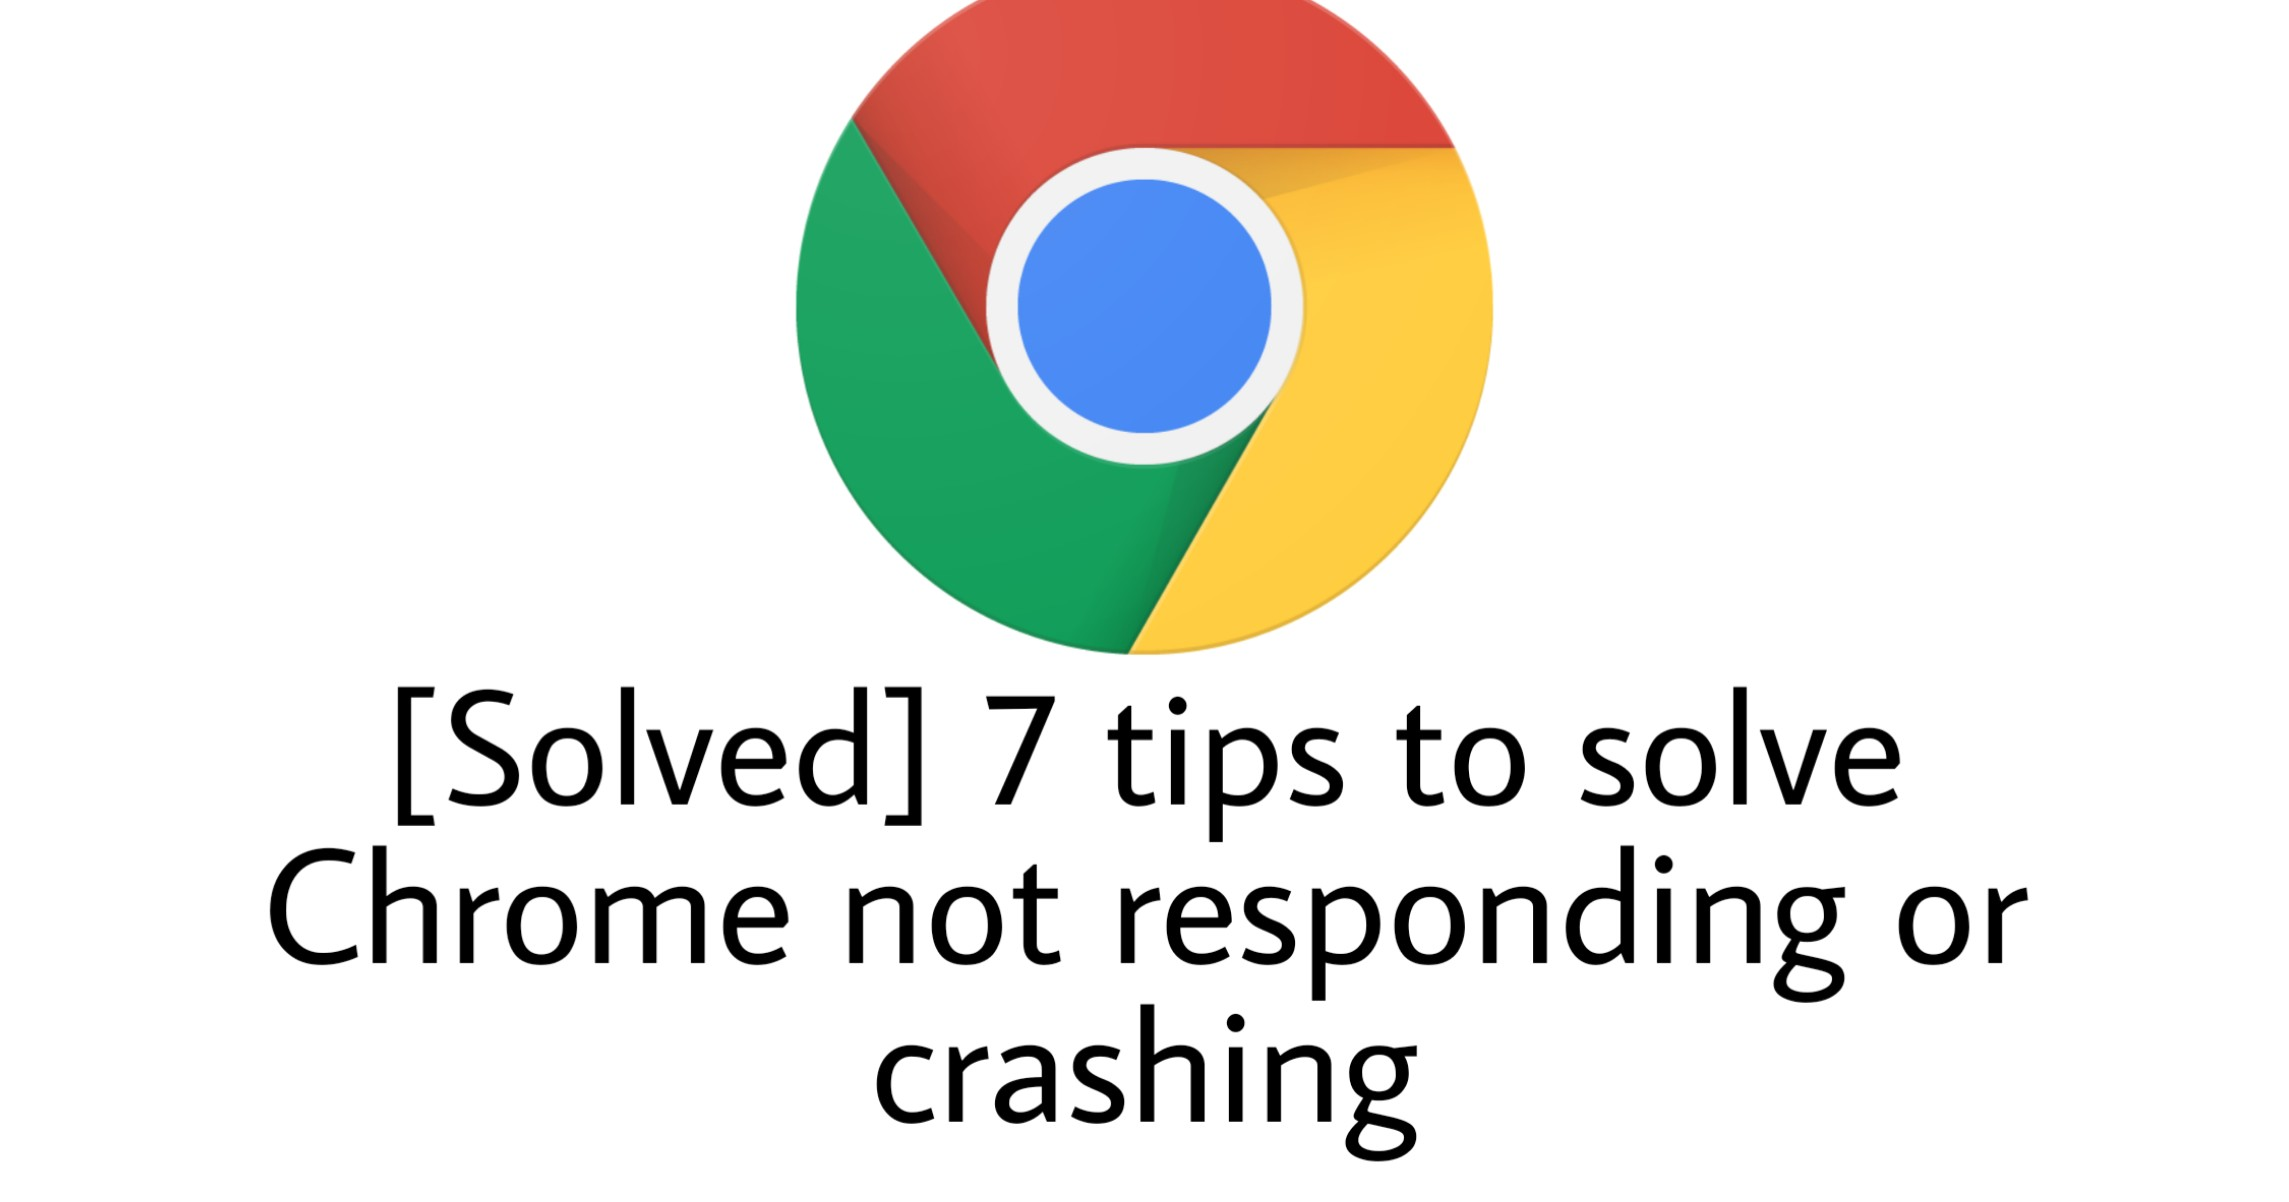 tips to solve chrome not responding or crashing